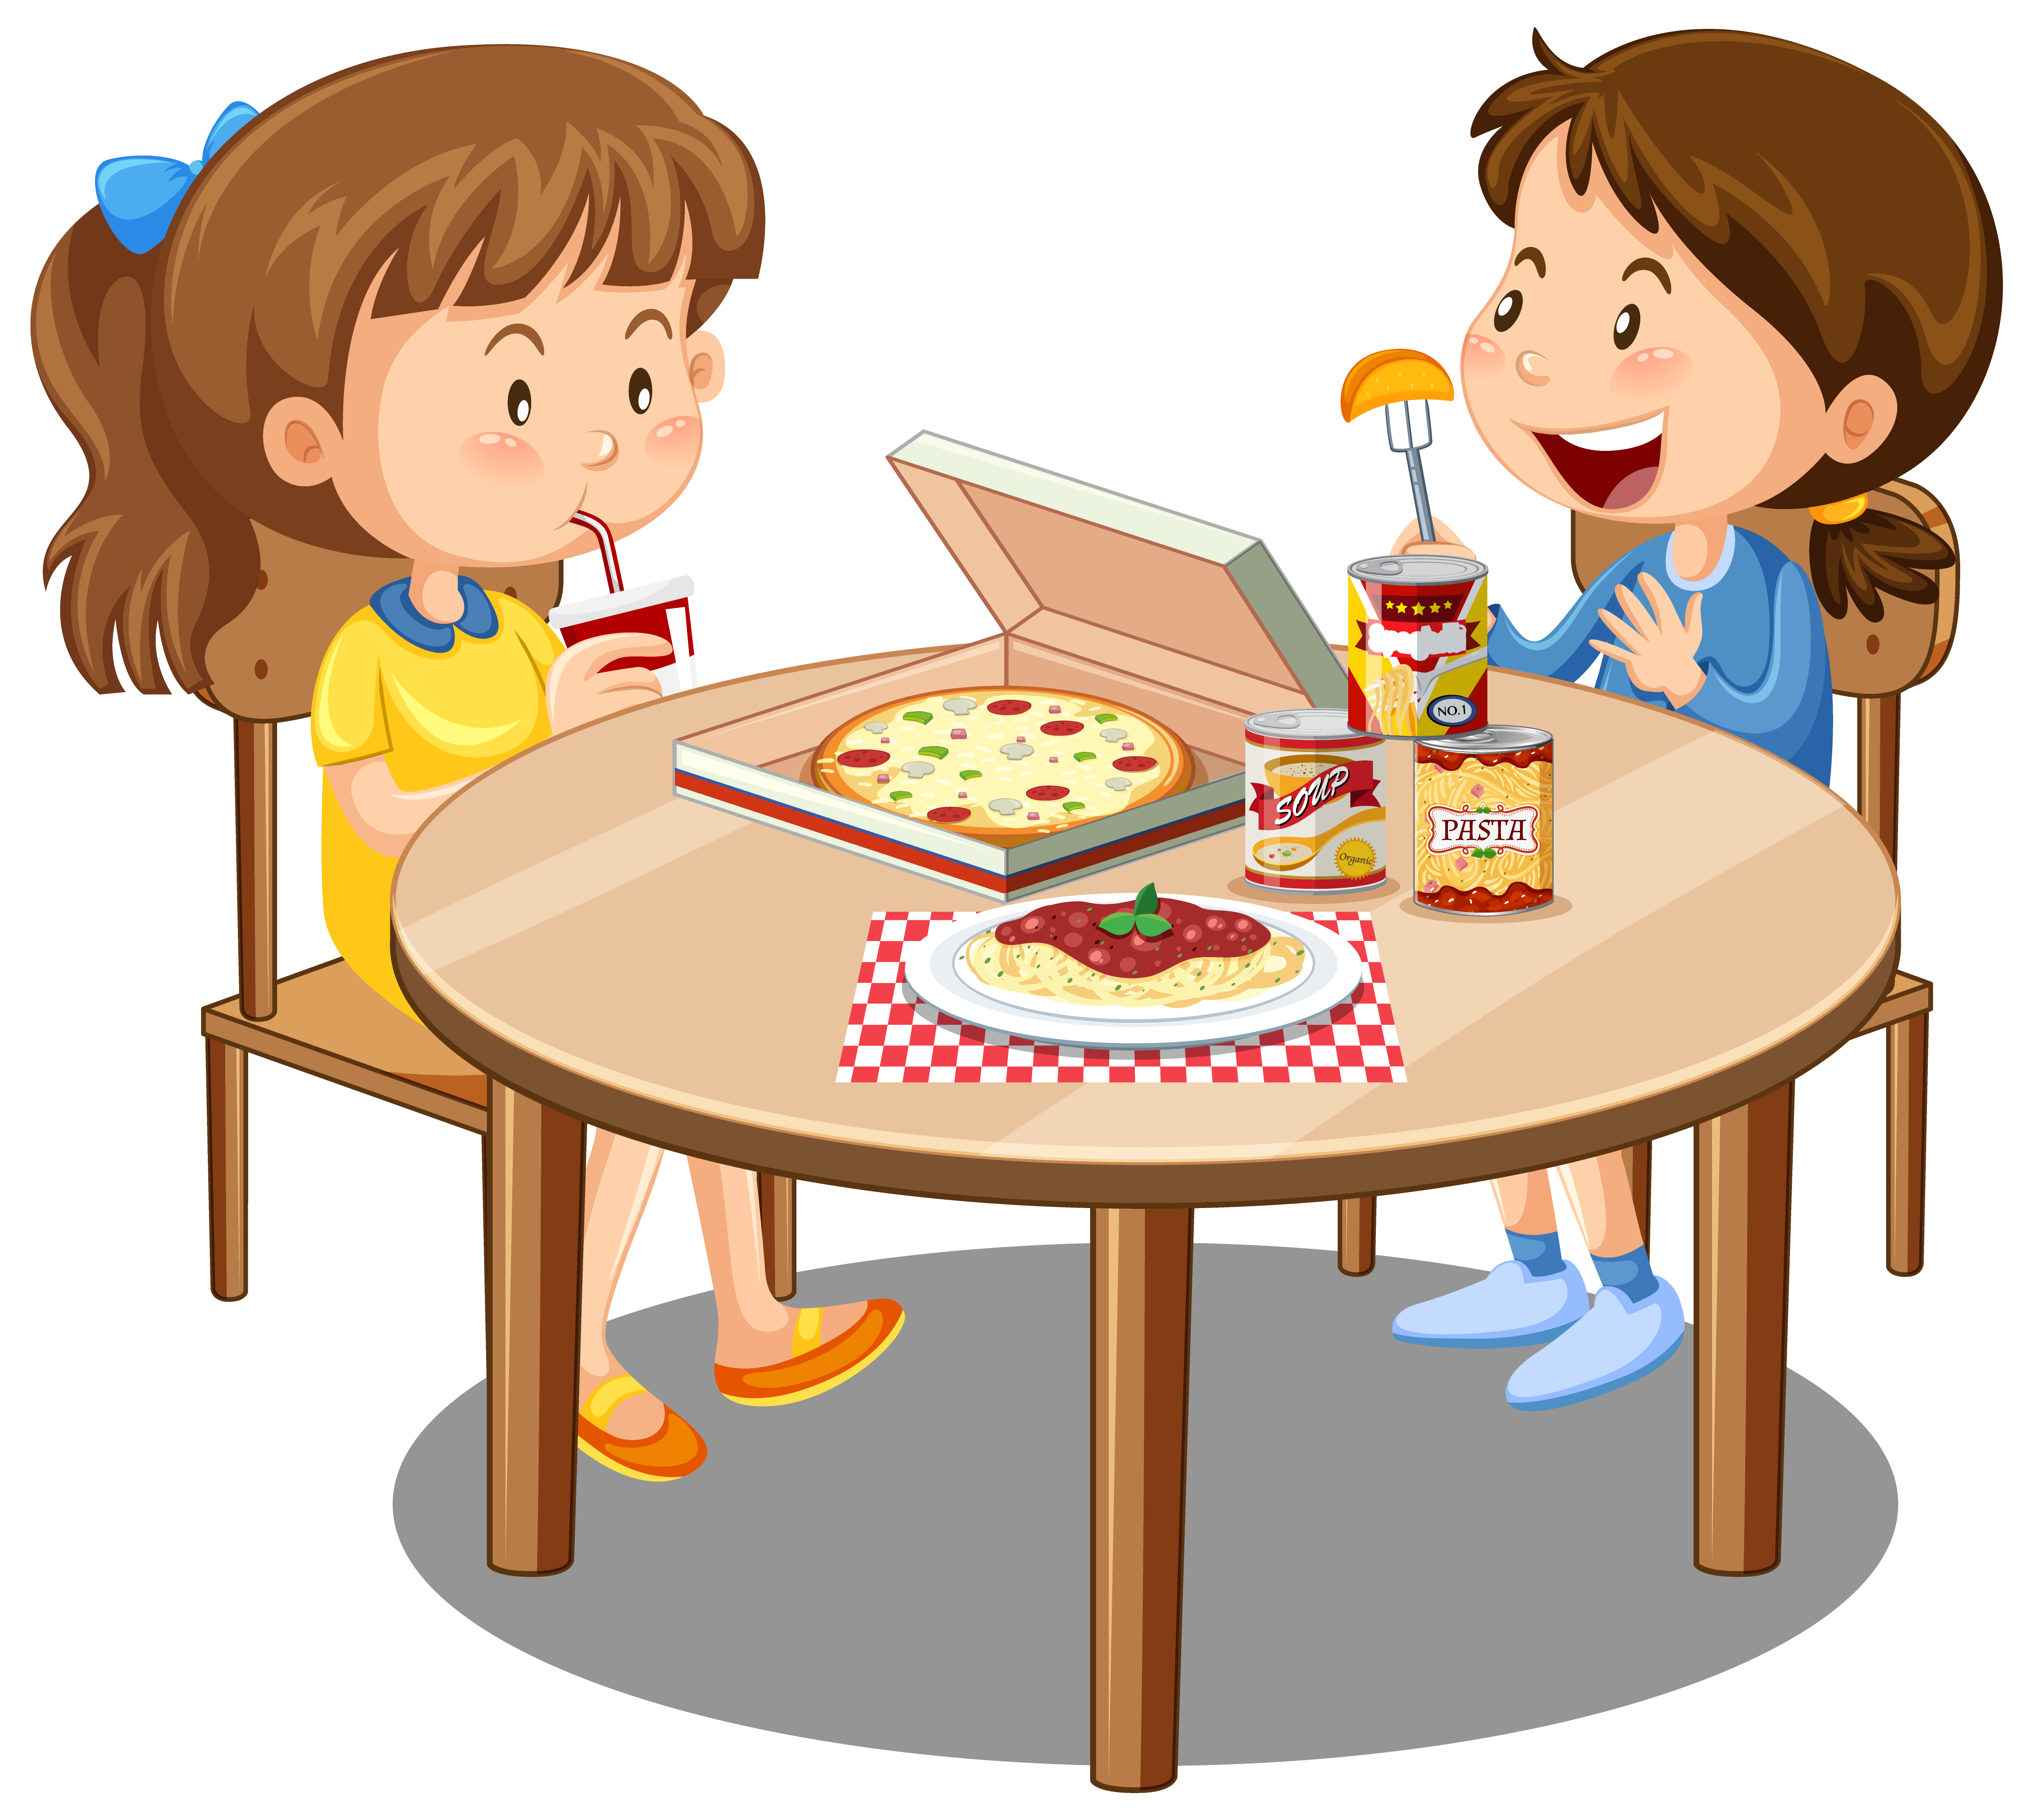 Two Cute Girl Enjoy Eating With Food On The Table White Background 1844907 Vector Art At Vecteezy